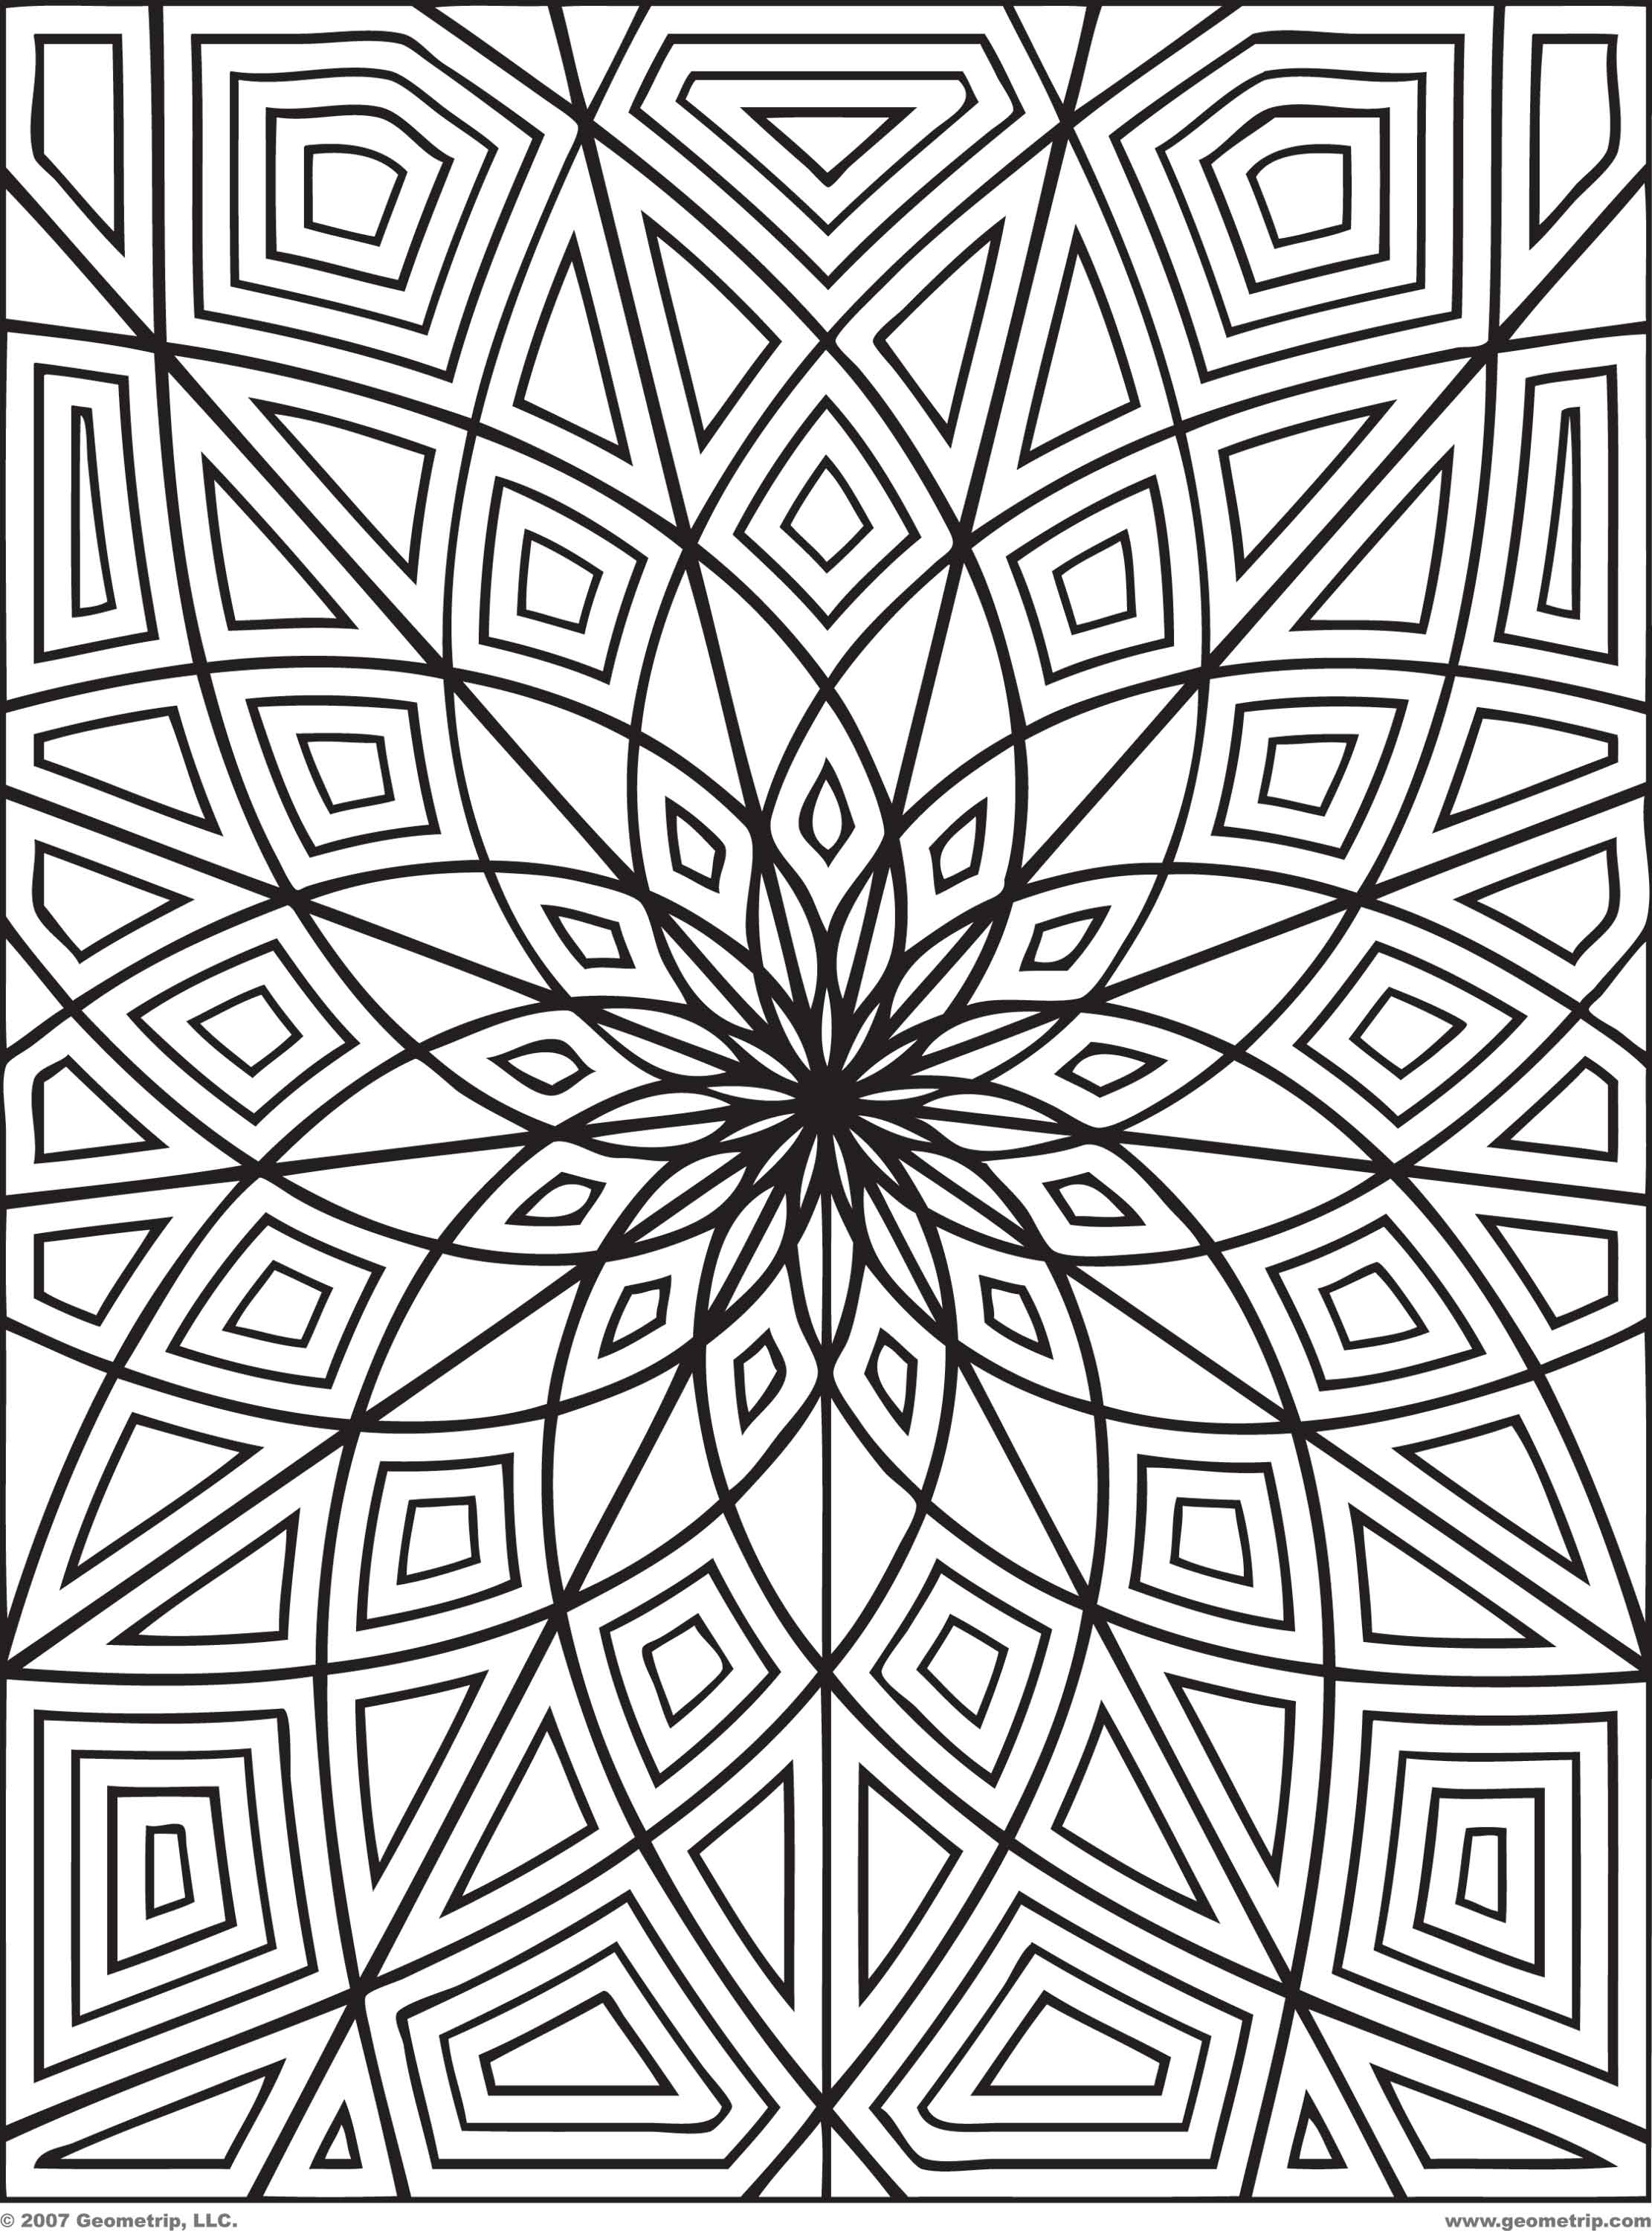 Coloring Pages Cool Design Coloring Pages To Print free printable coloring pages of cool designs az geometric art high quality design printable